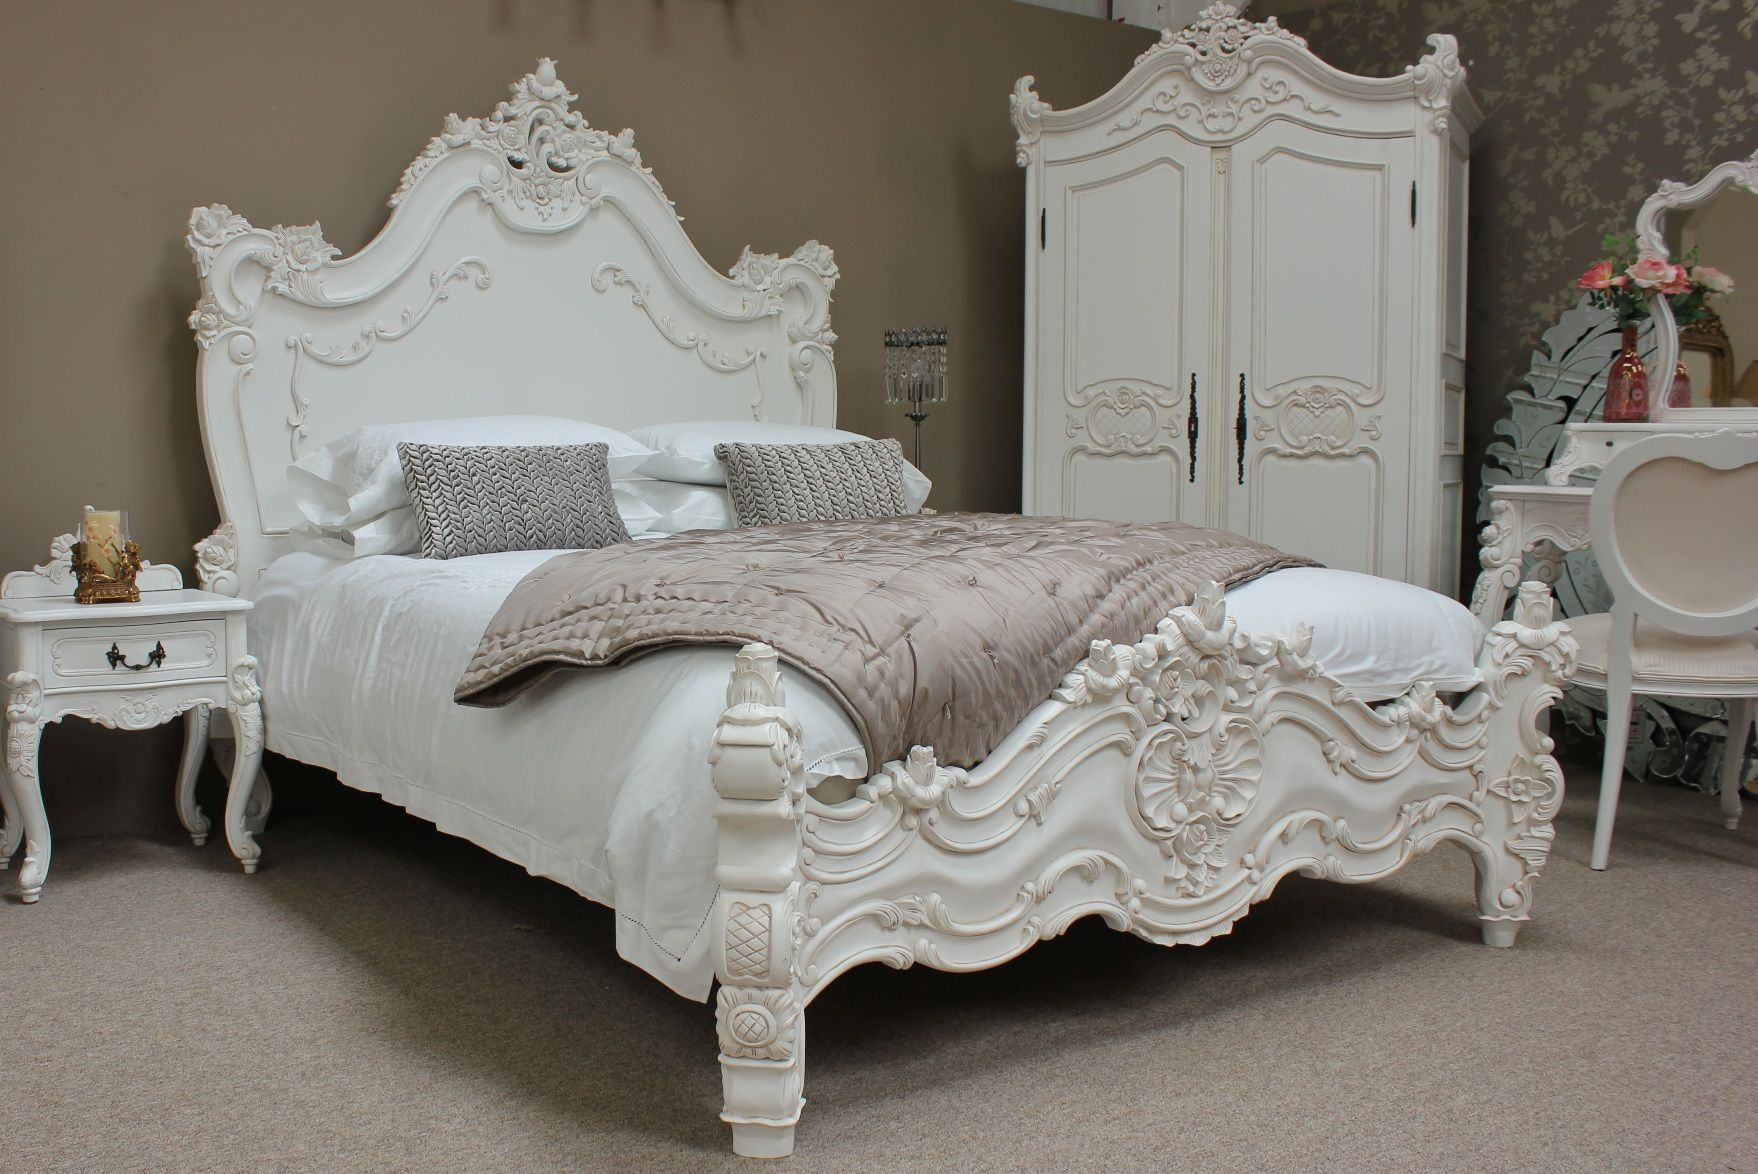 classic white bedroom furniture. Classic White Bedroom Furniture. We Are Proud To Display What Consider Be The Most Wonderful Furniture K